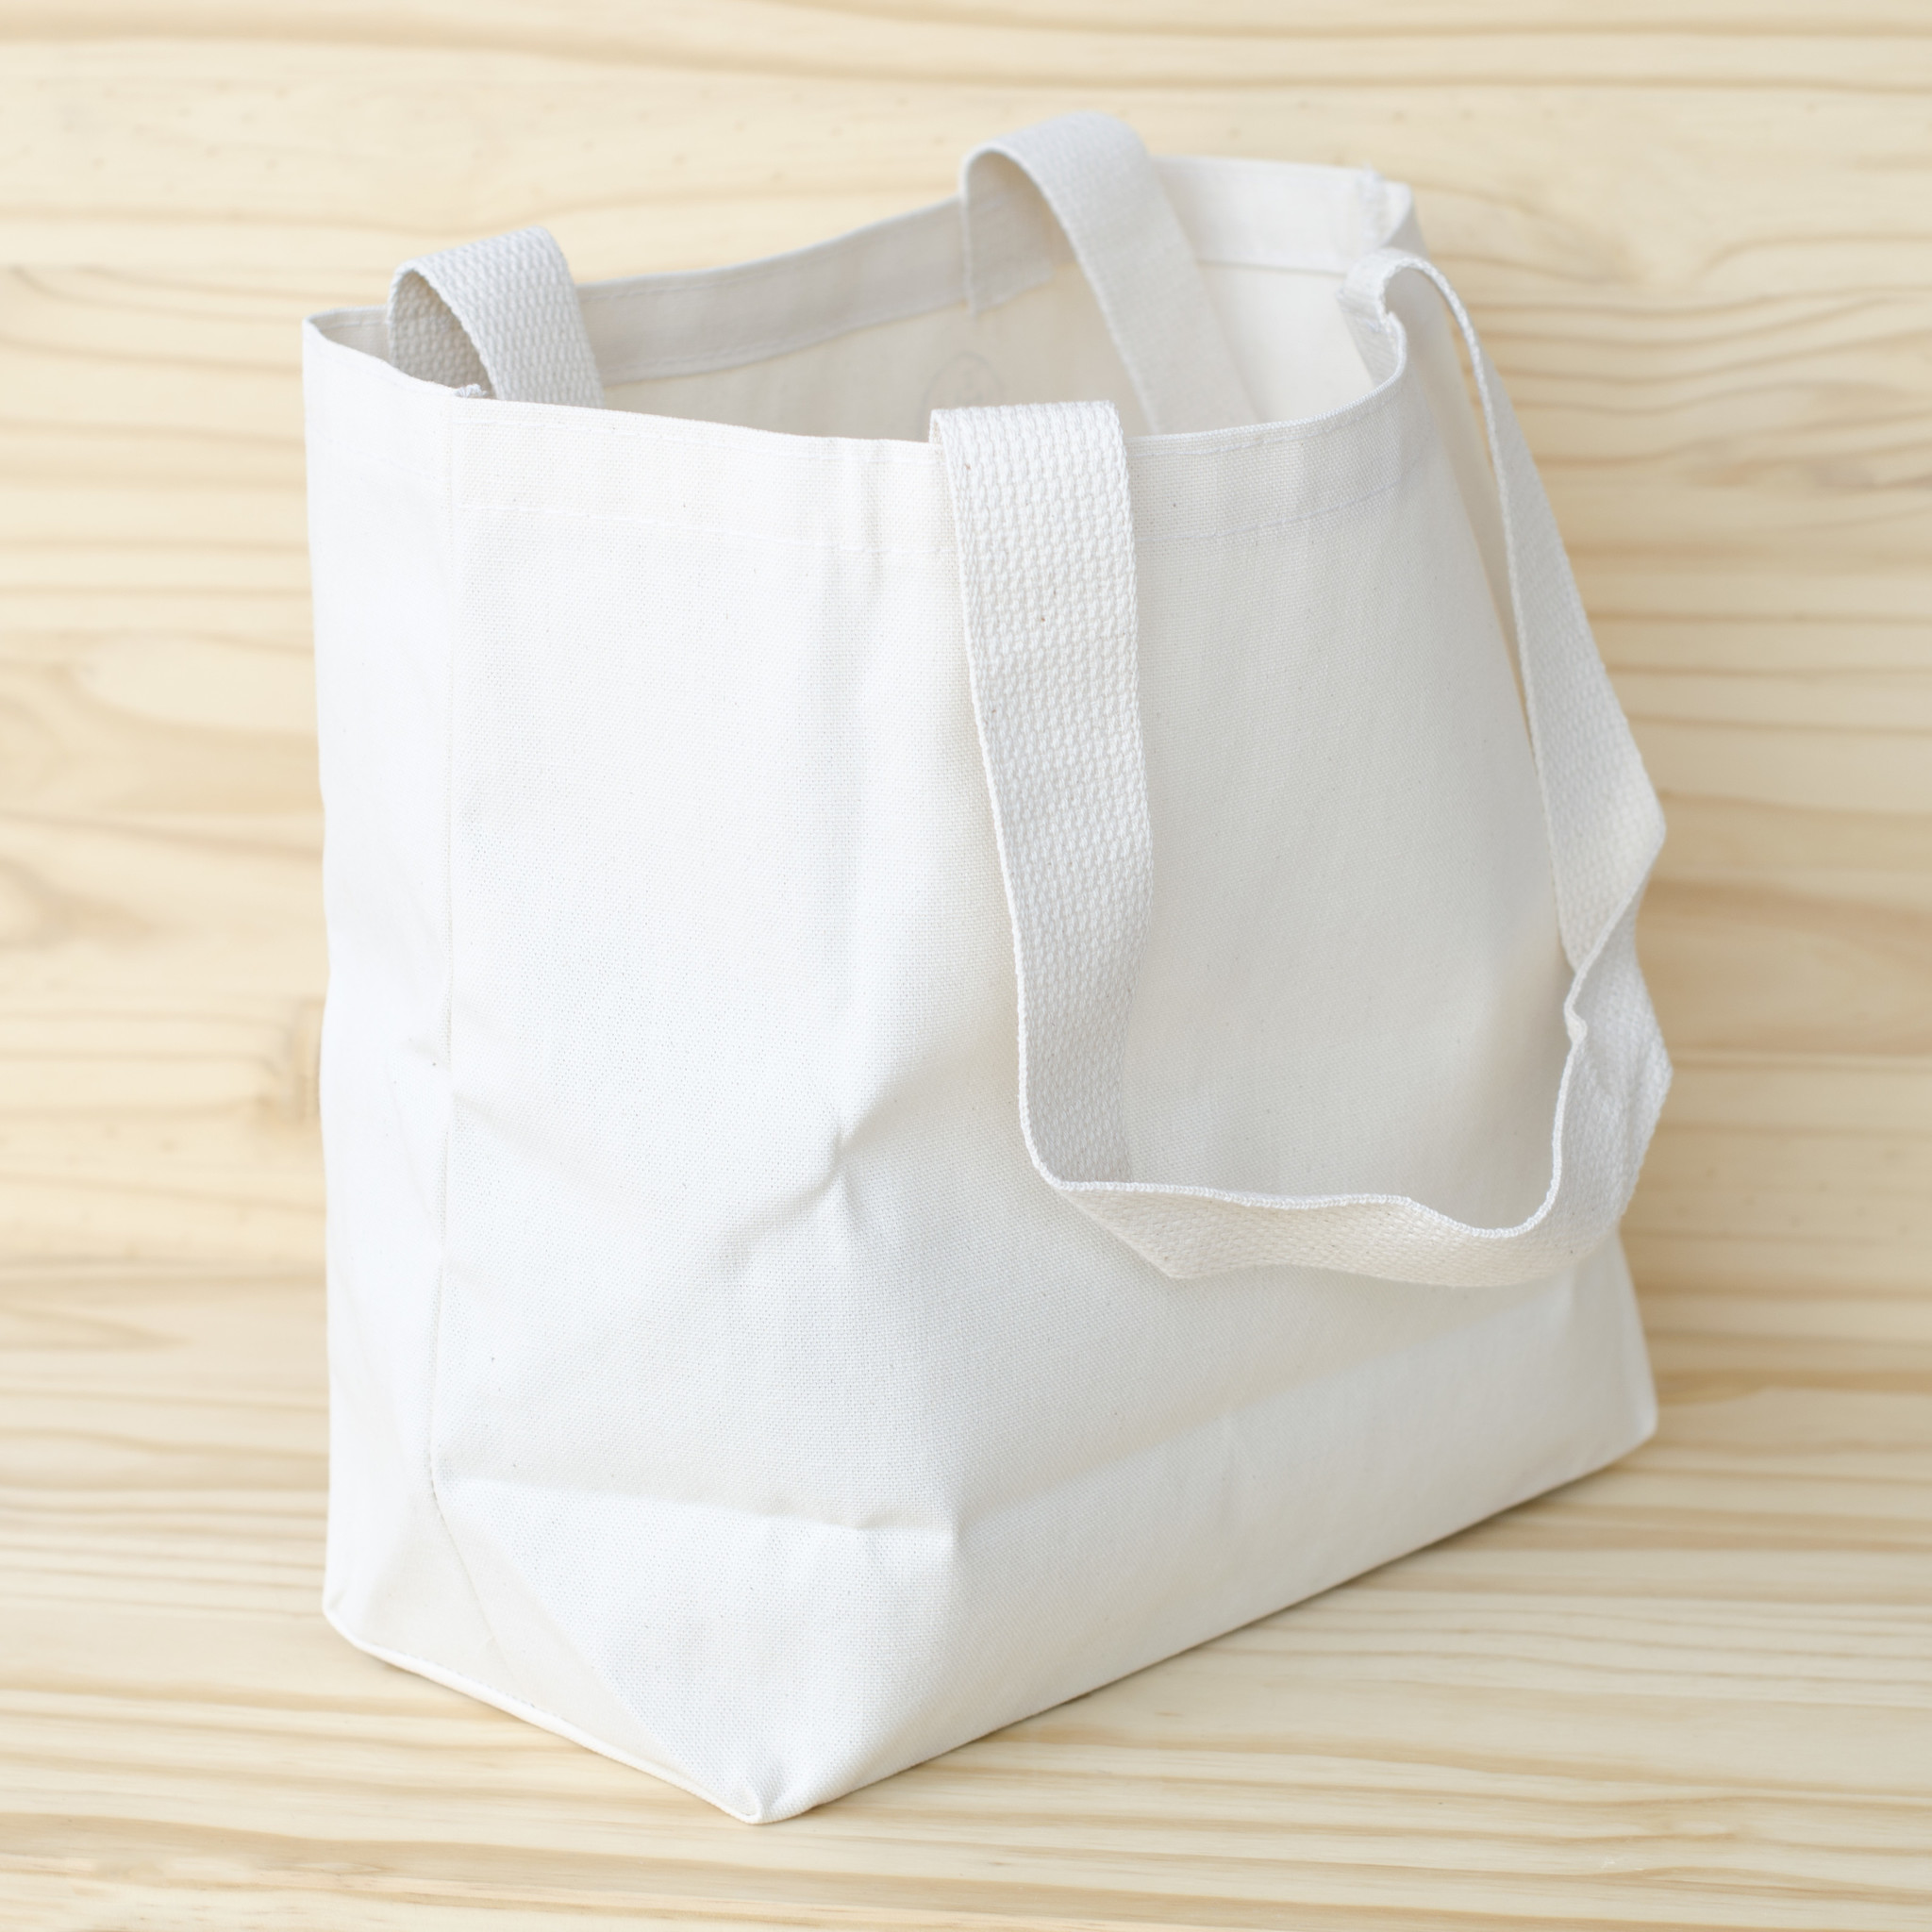 Fringe Supply Co. : Knitting Necessities Tote Bag